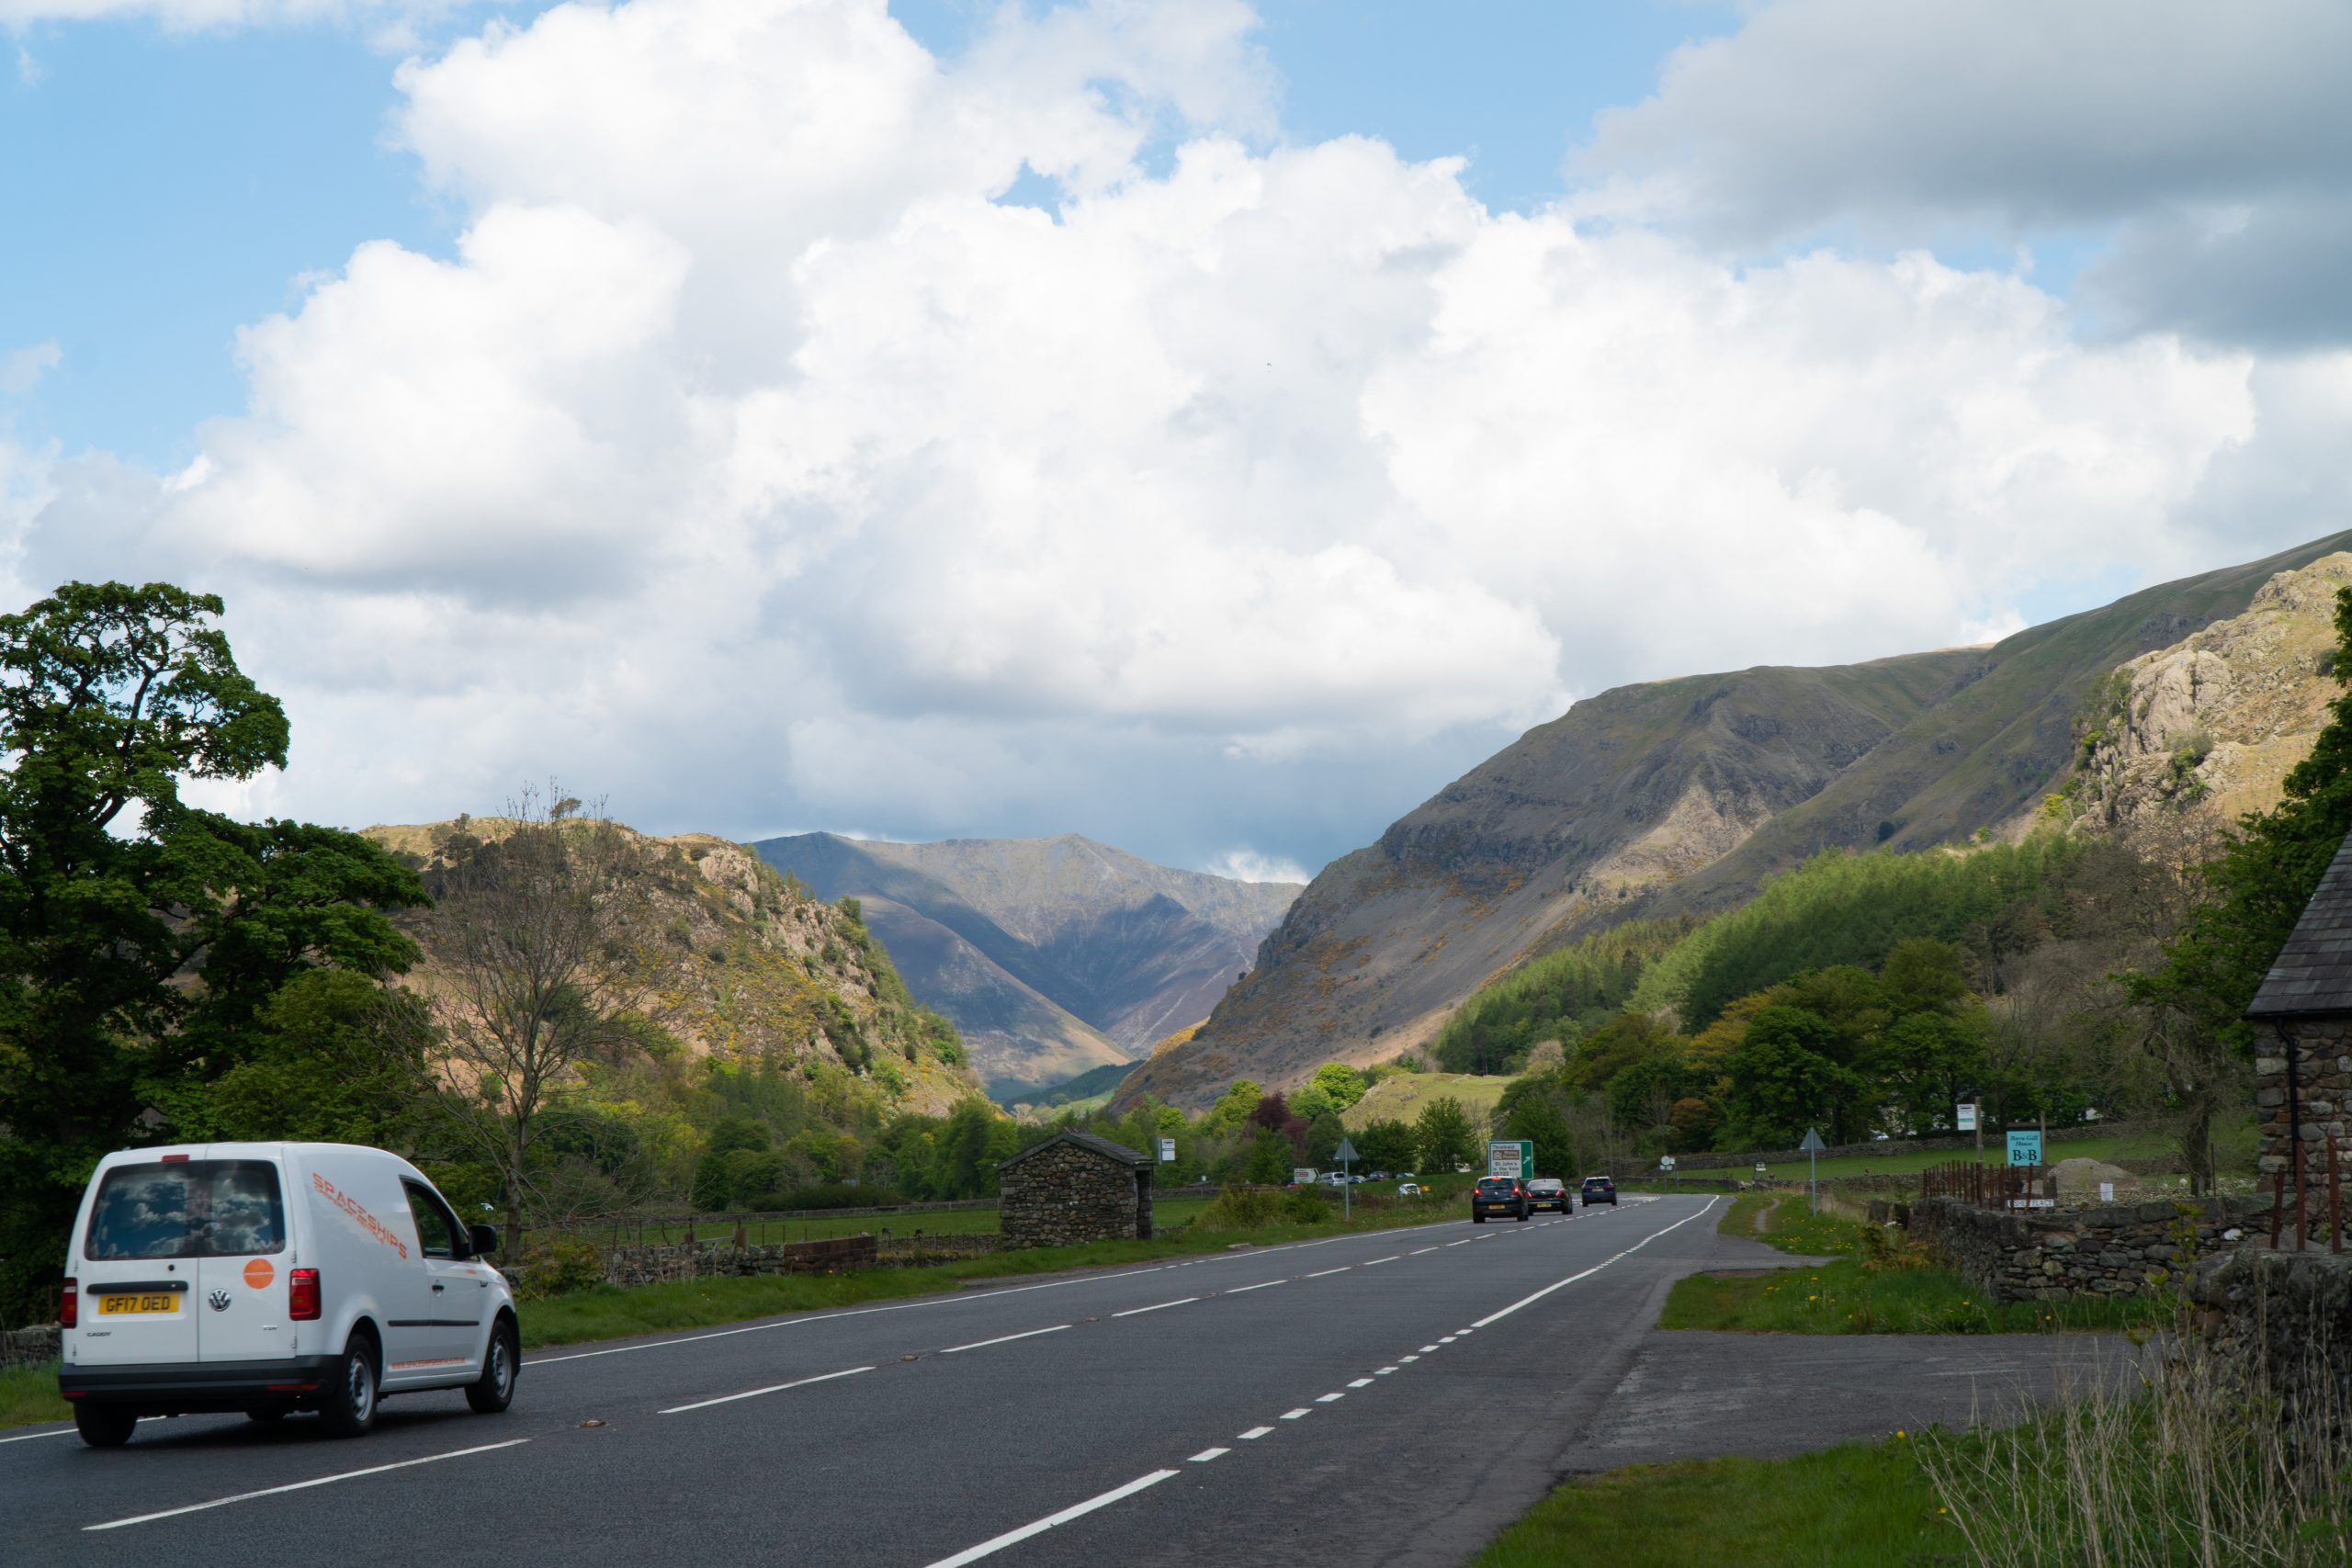 Campervan driving into mountains